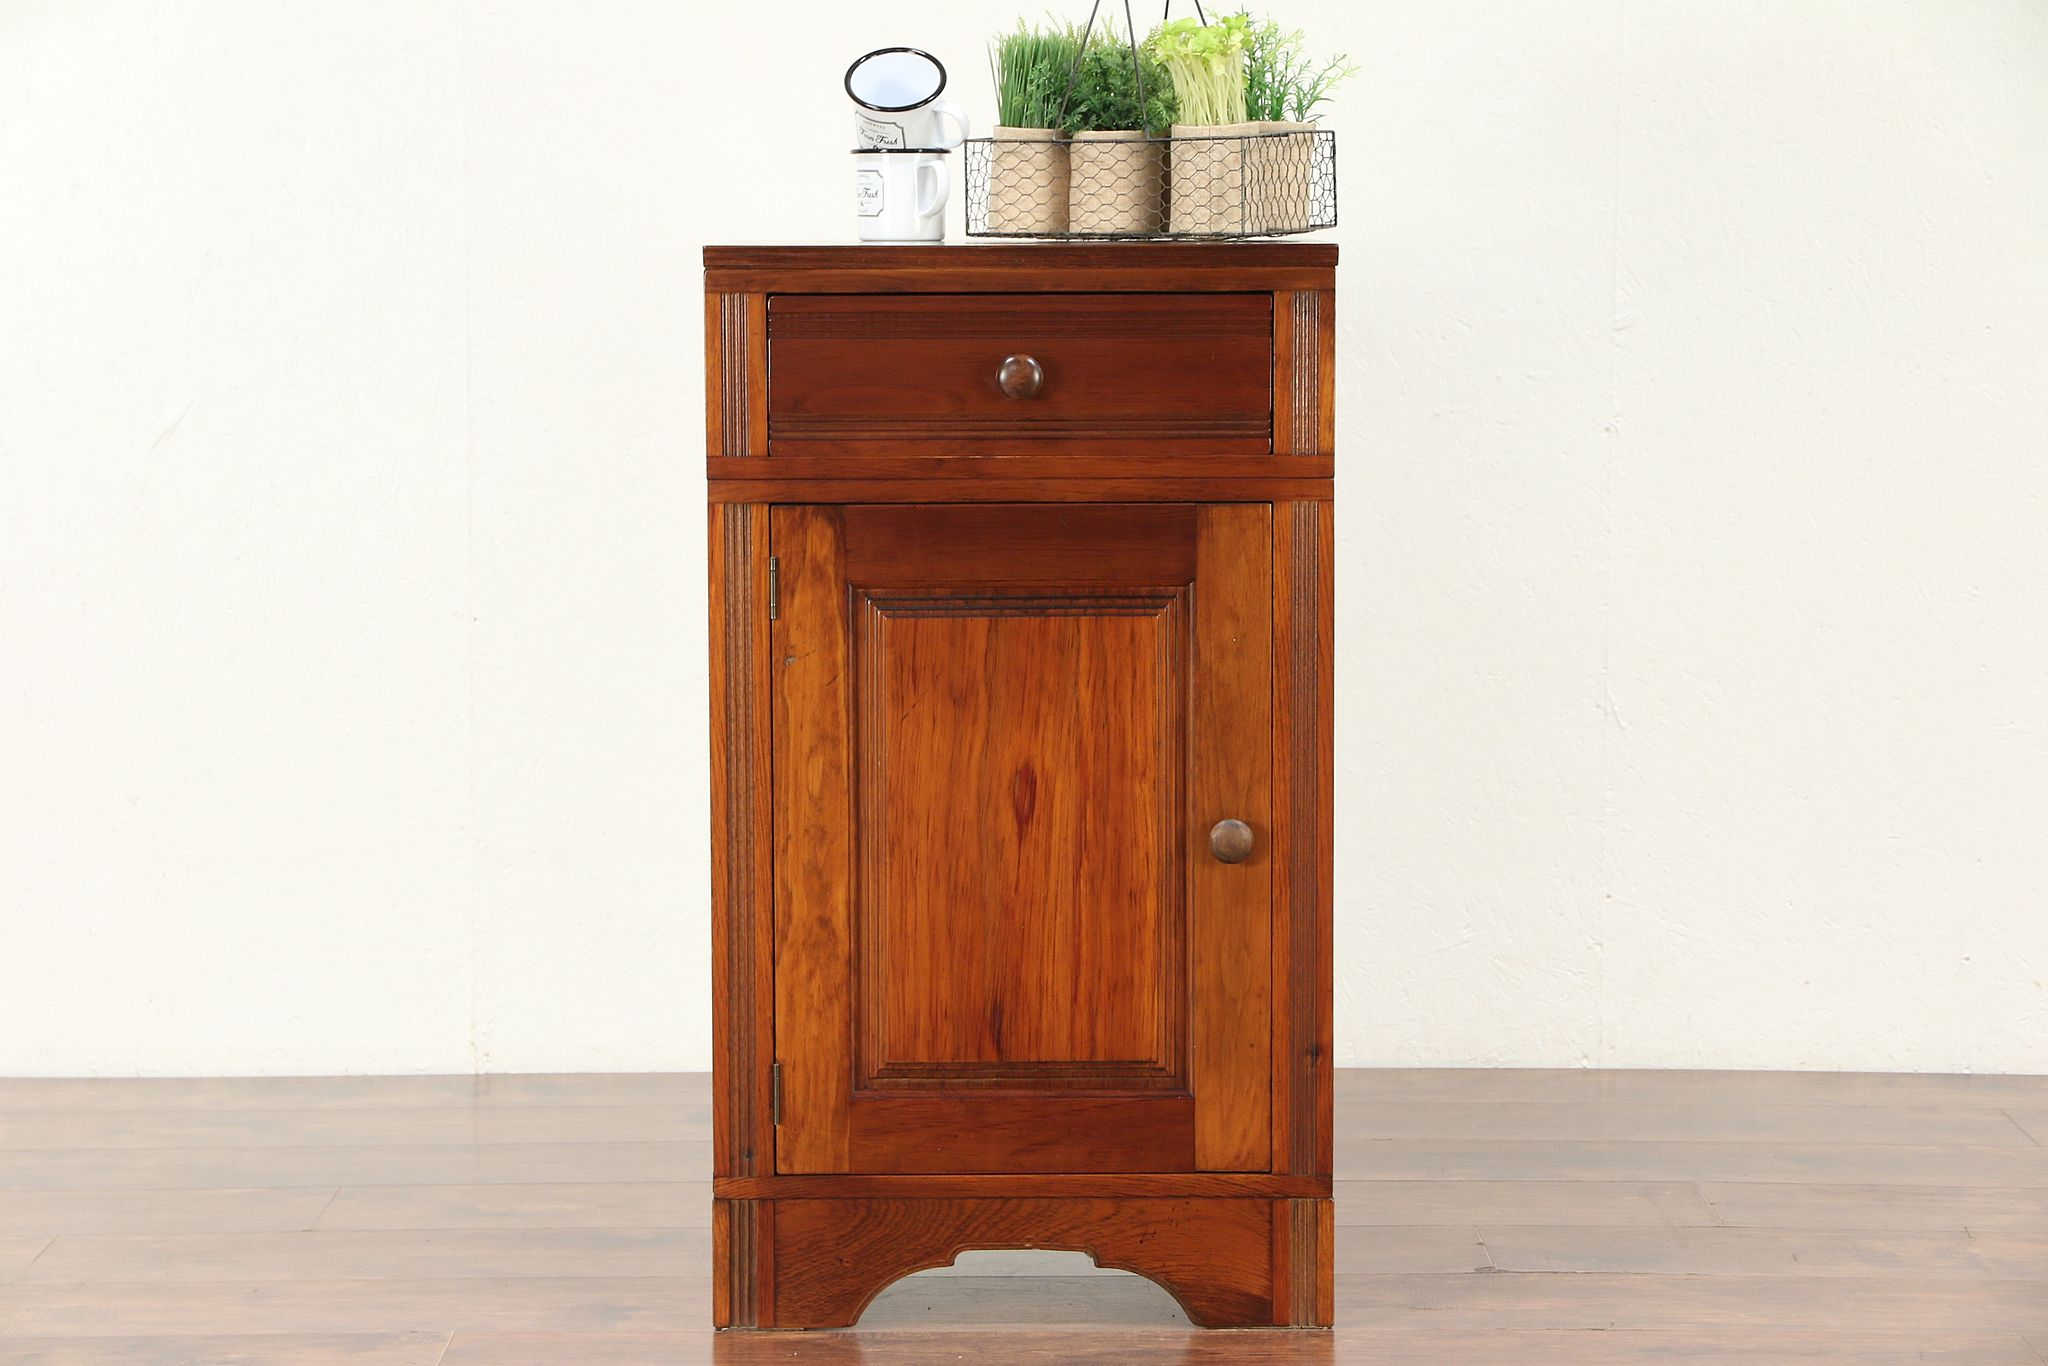 Country Pine Wainscoting Pantry Cabinet